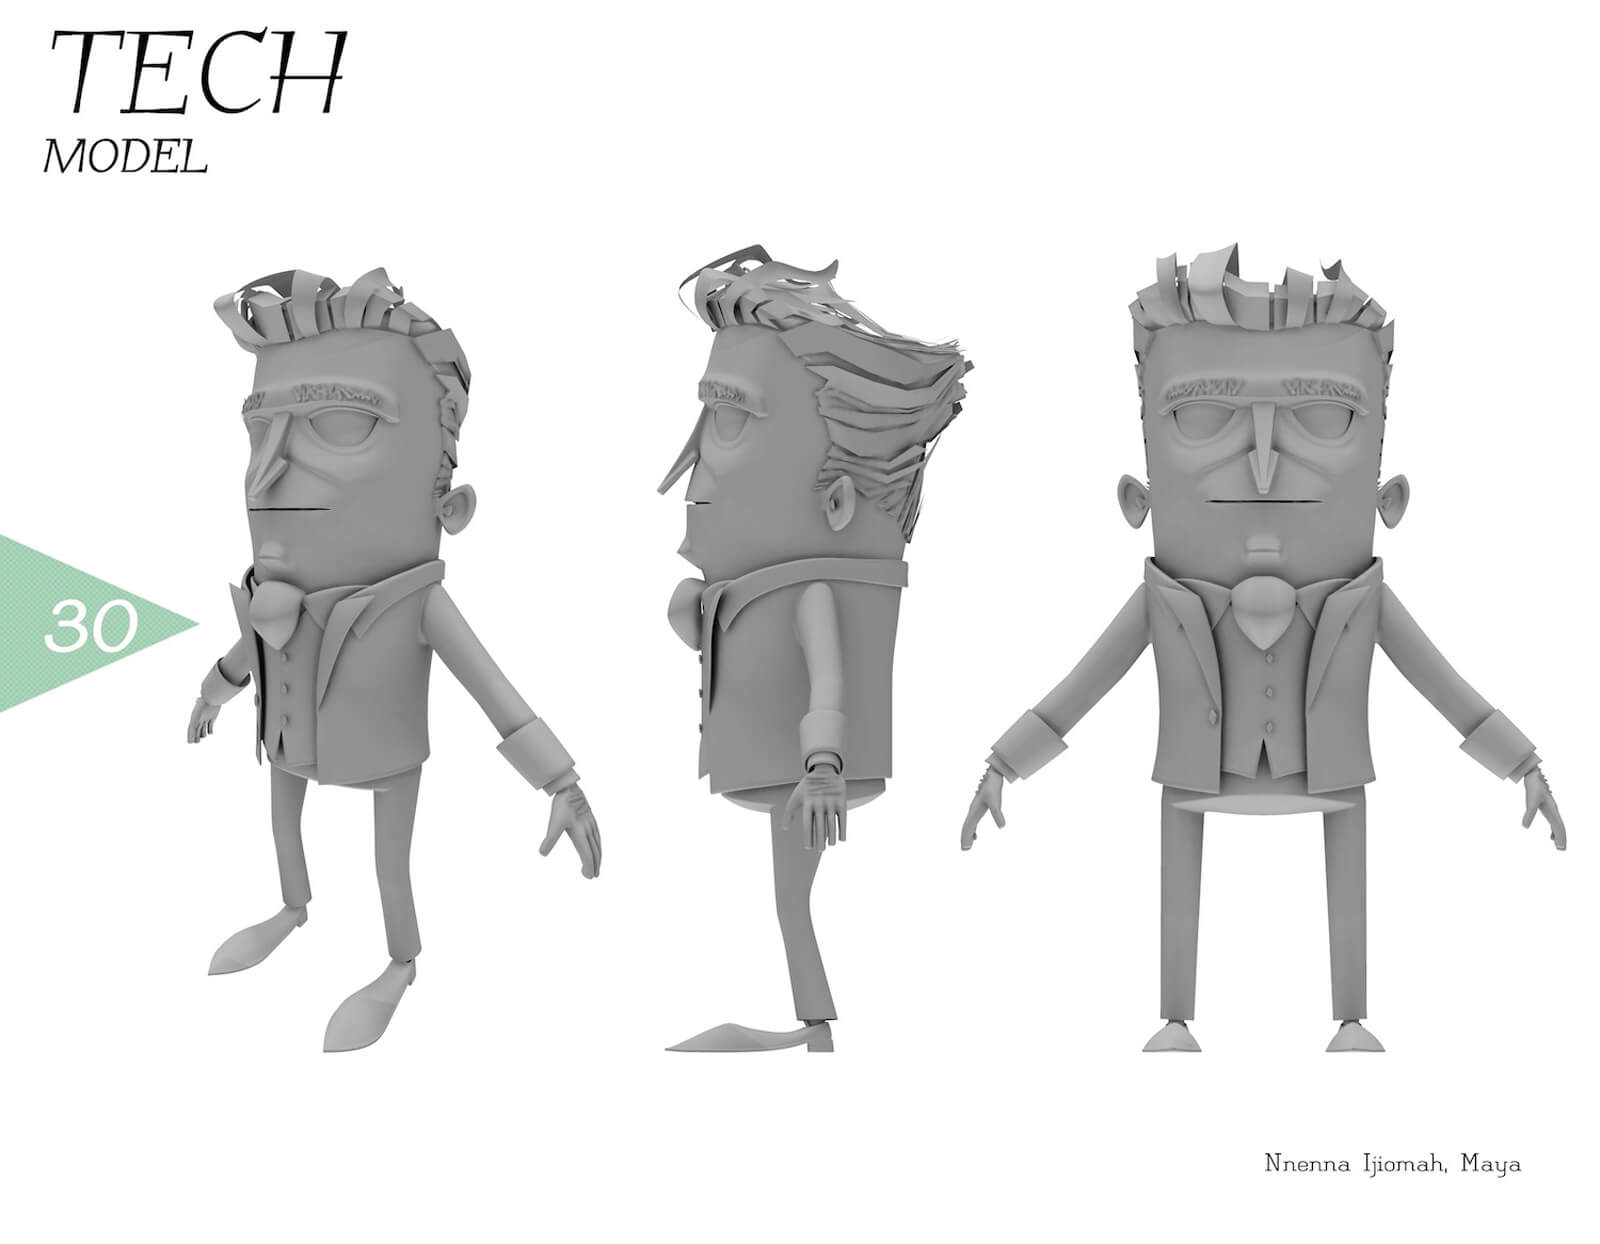 3D tech model of a man with a large head and wearing a suit from different angles. The color of the character is gray.